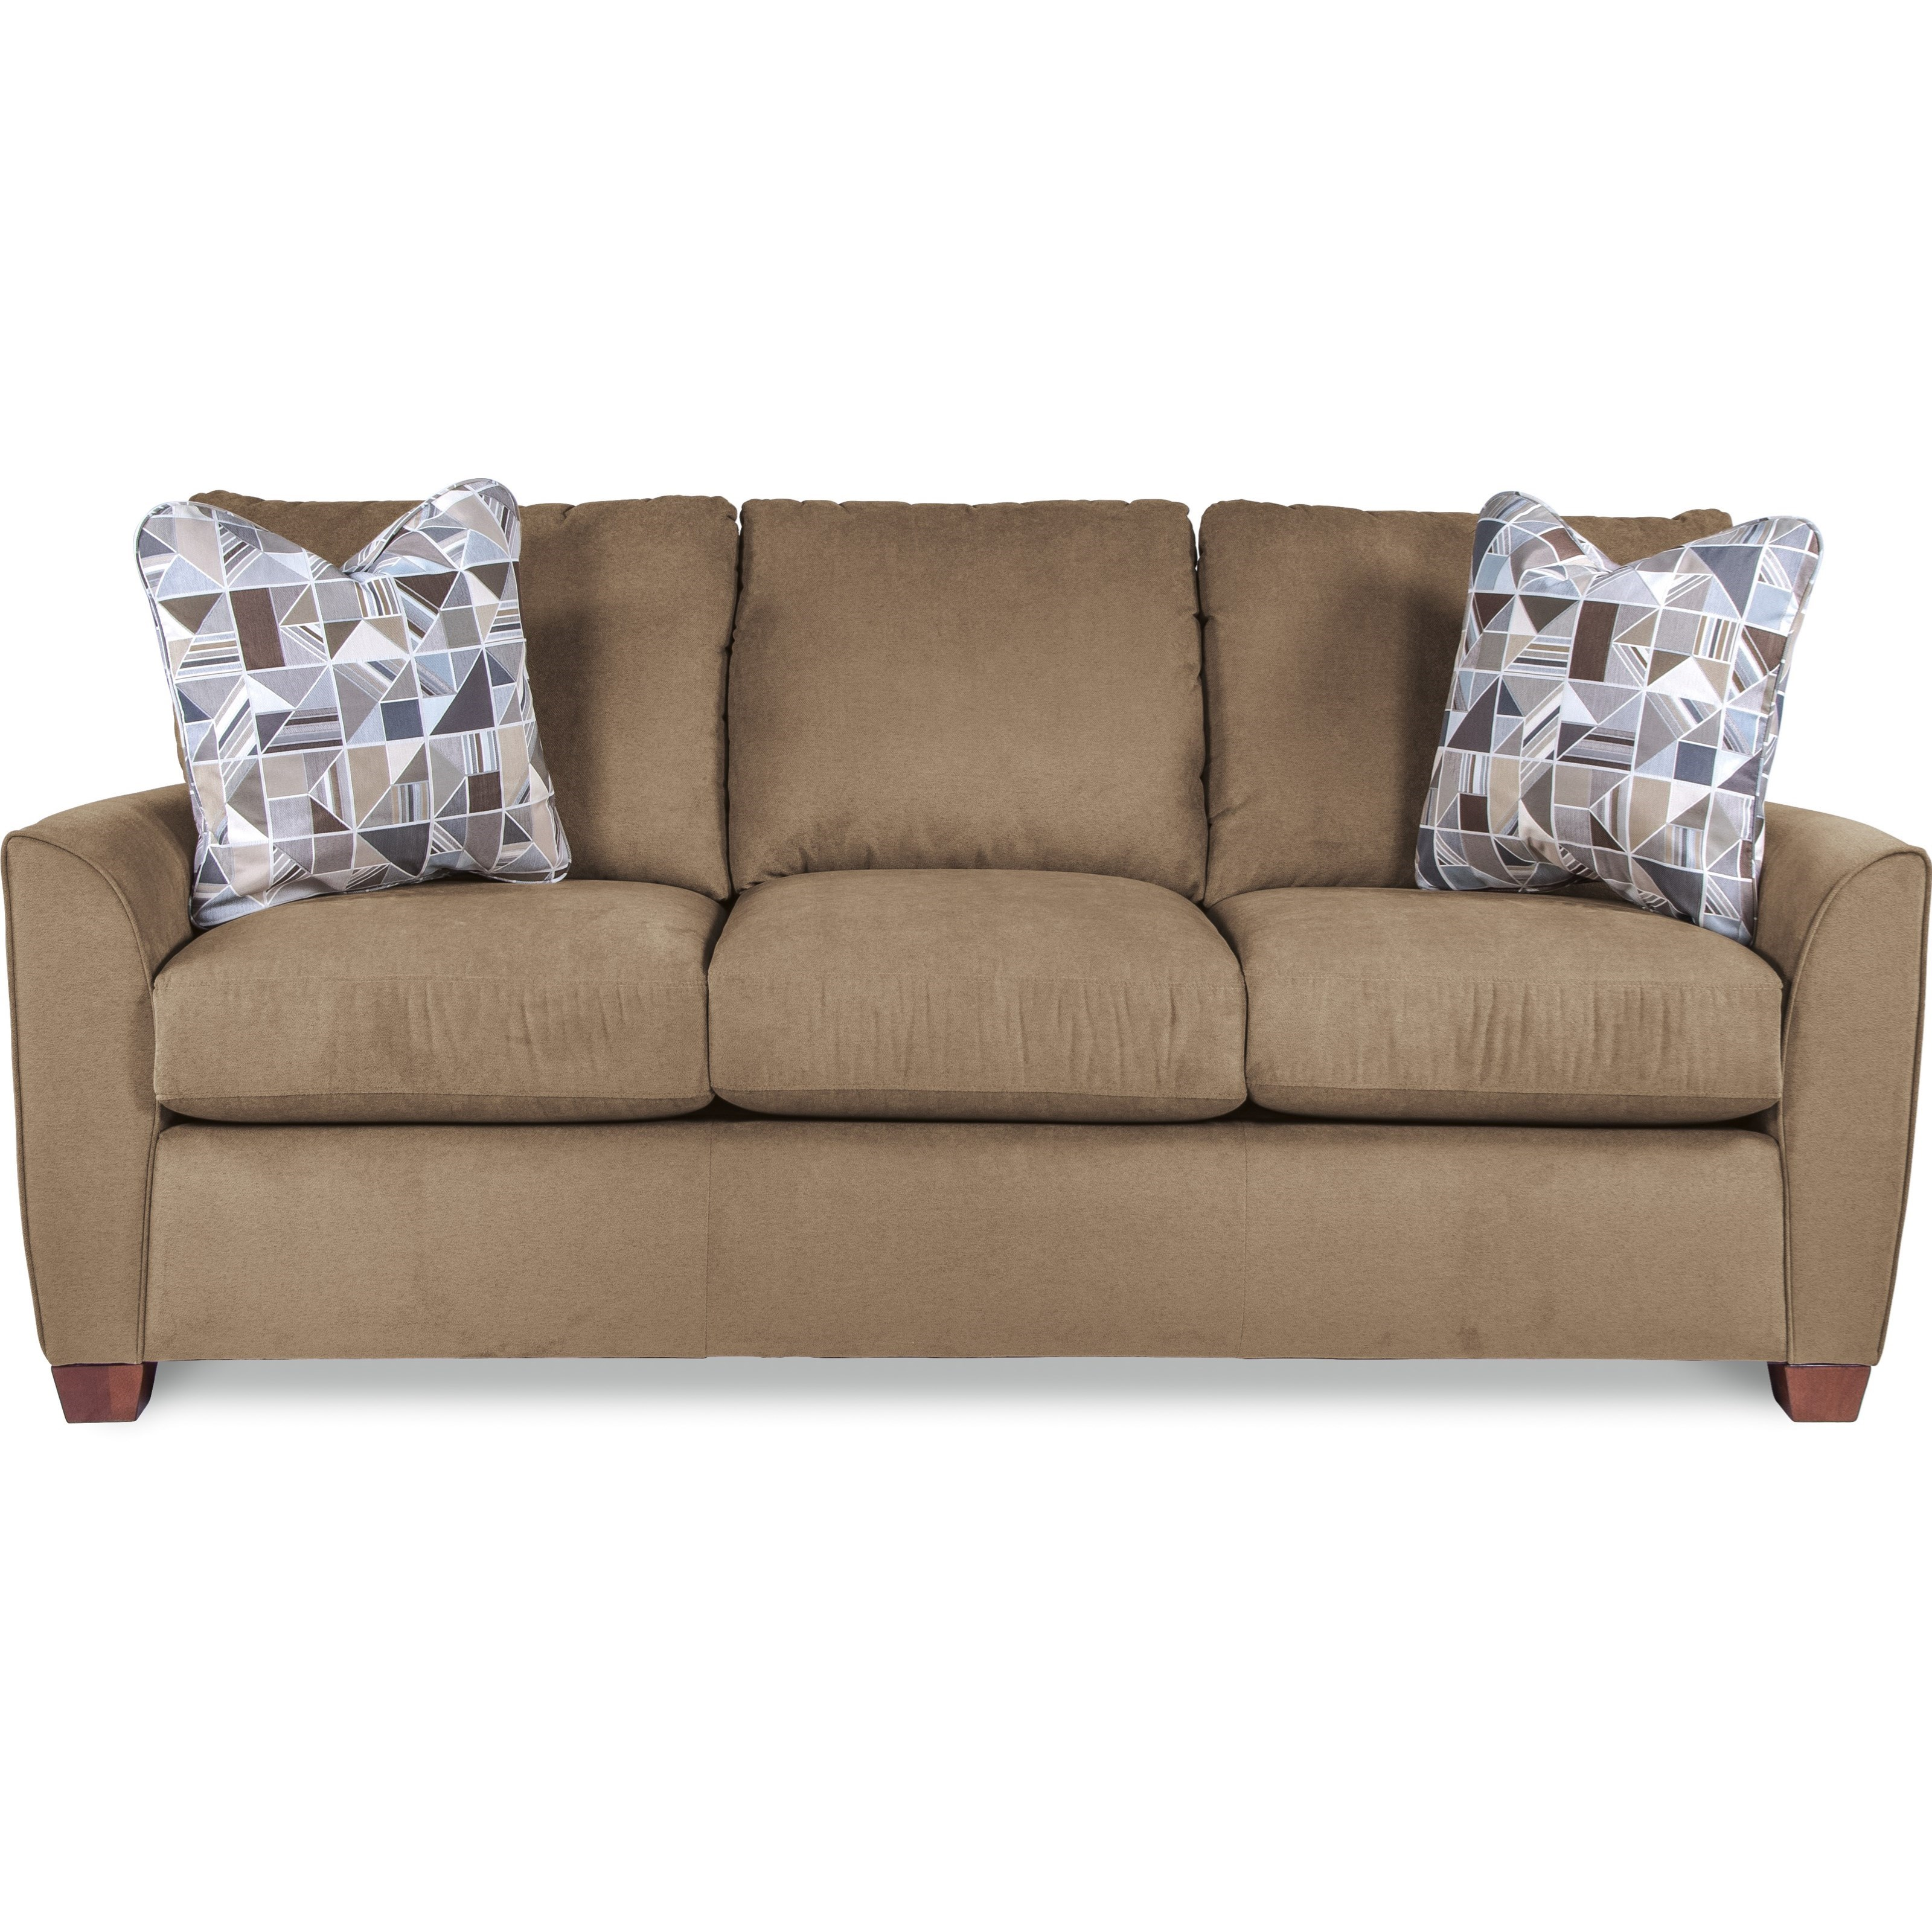 Amy Queen Sleeper Sofa by La-Z-Boy at Novello Home Furnishings